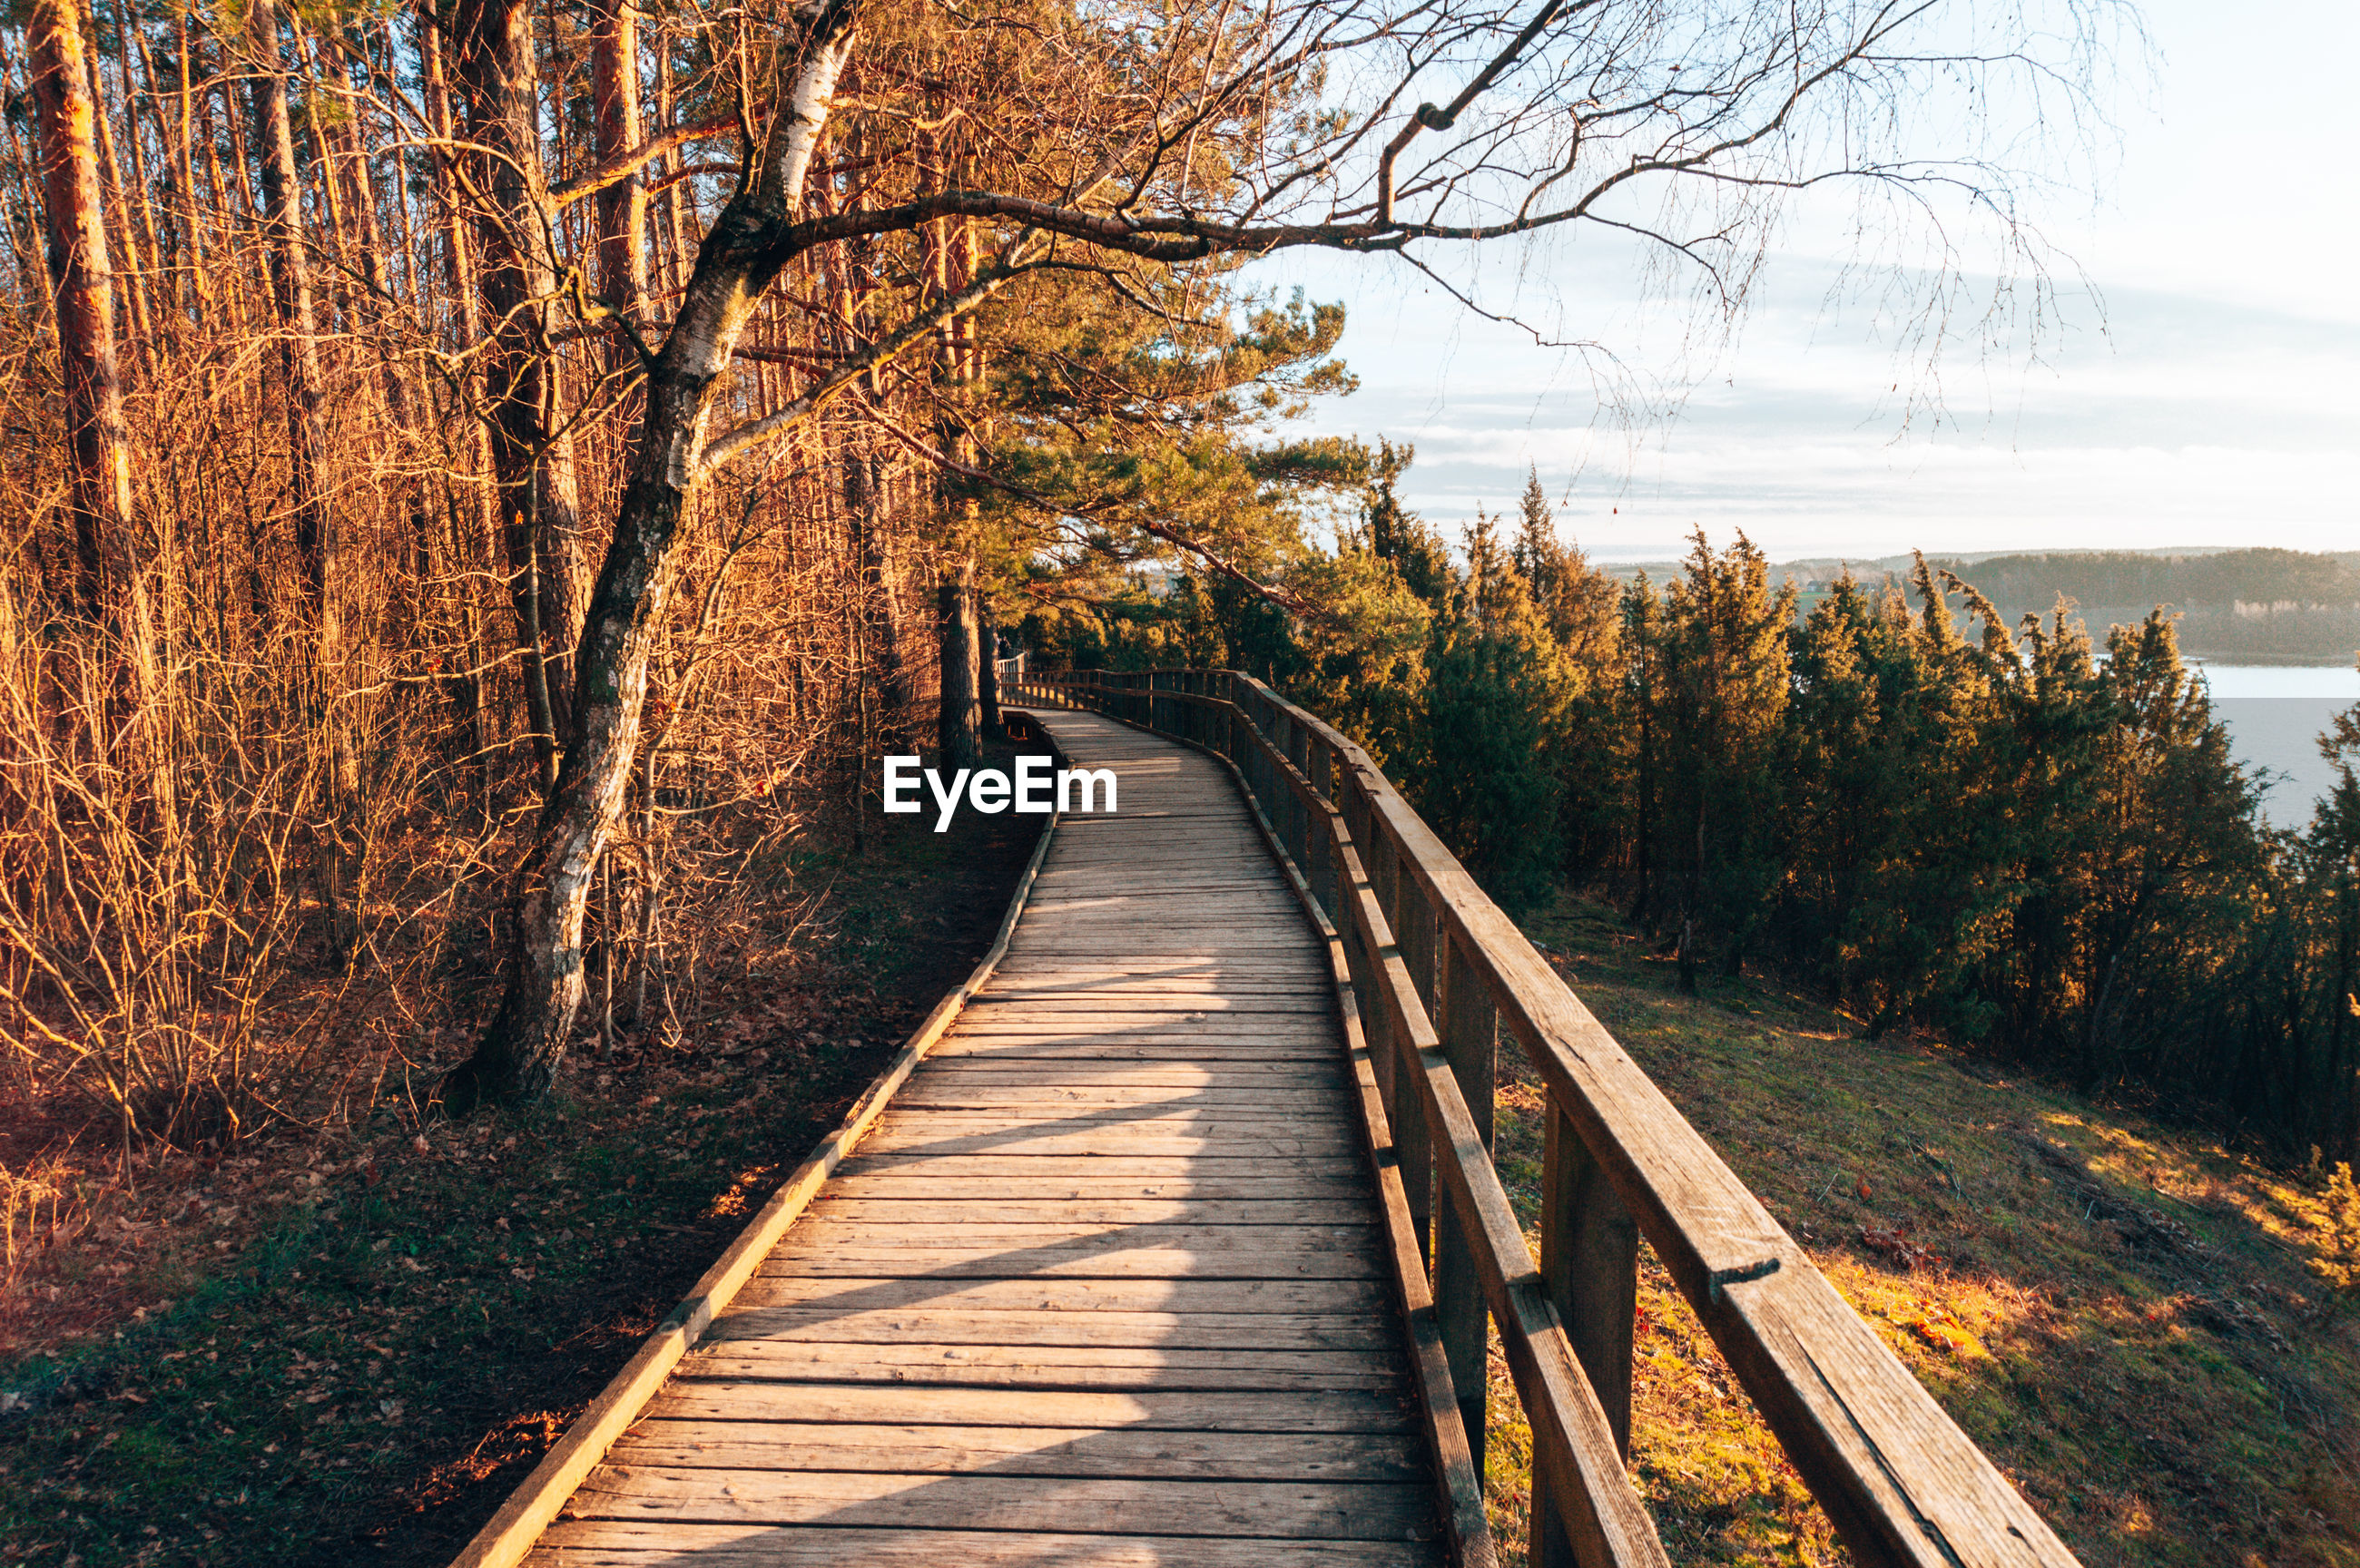 Boardwalk amidst trees in forest during autumn